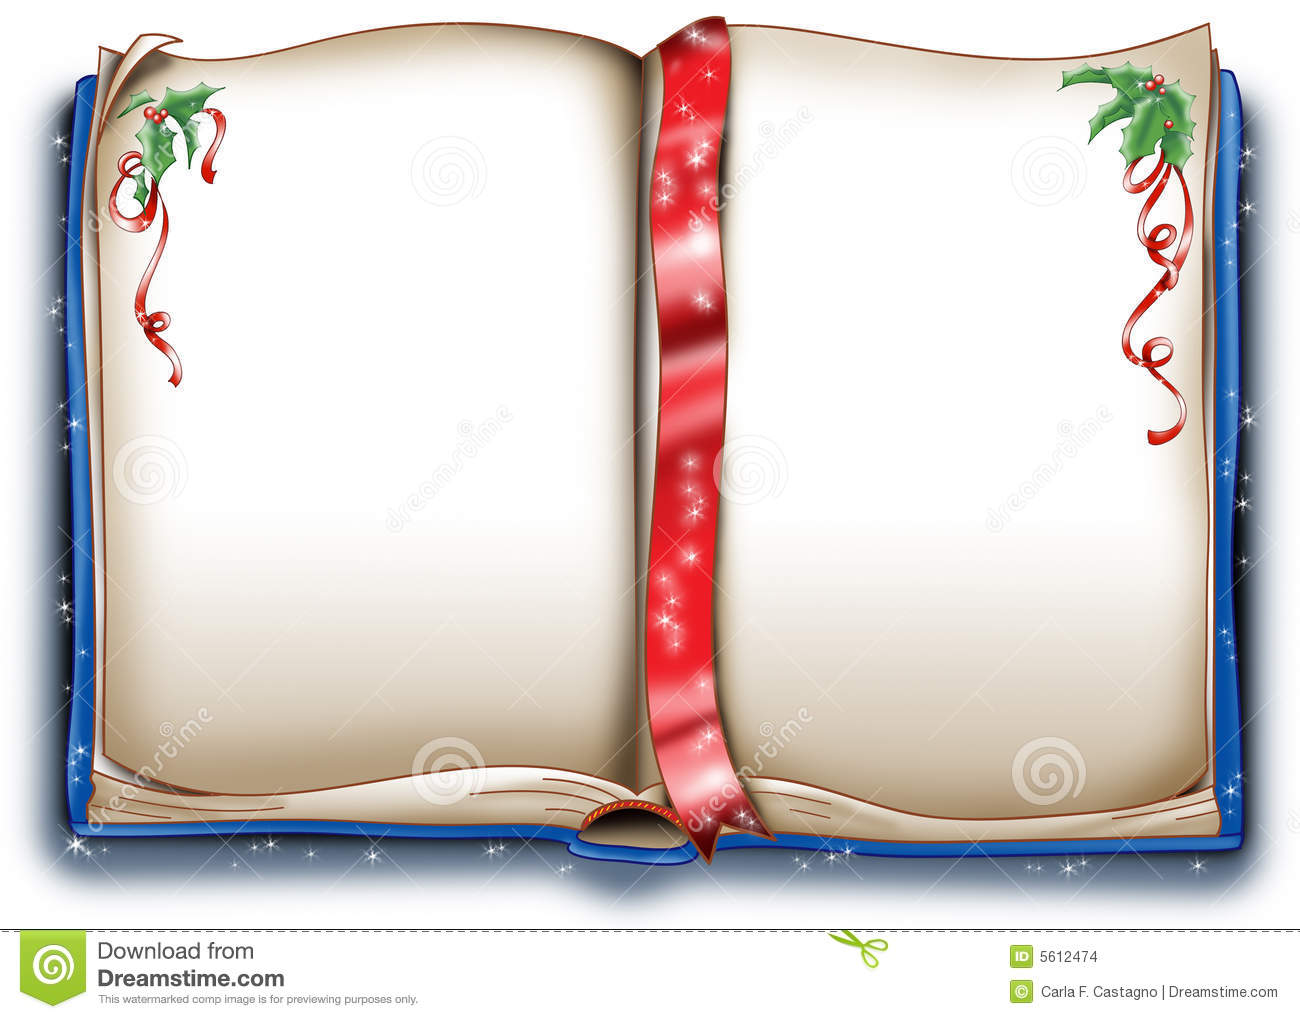 An empty old magic book decorated with christmas holly